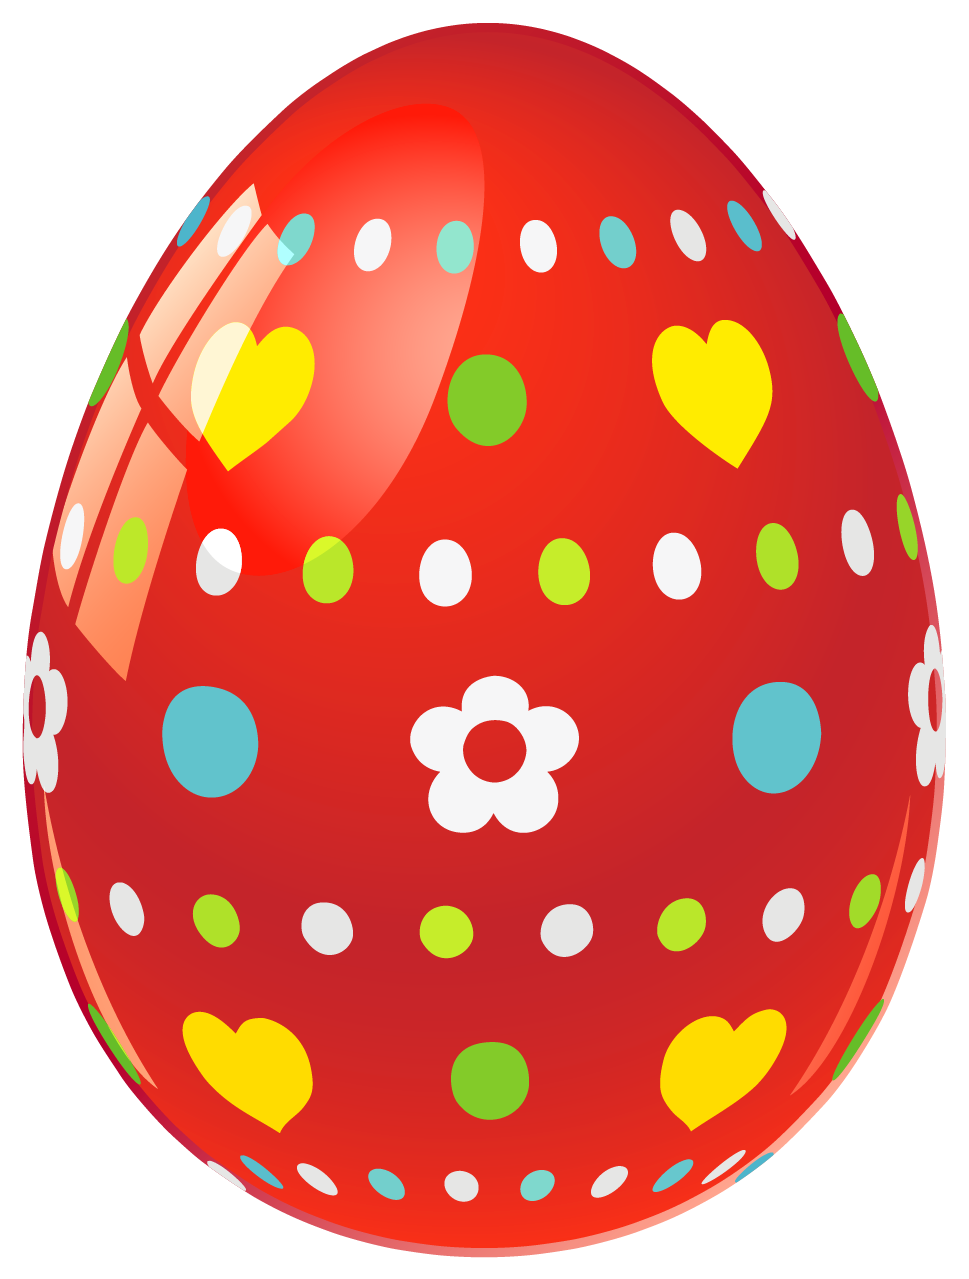 Easter egg clip art images clip art freeuse download Red Easter Egg with Flowers and Hearts PNG Picture | Gallery ... clip art freeuse download